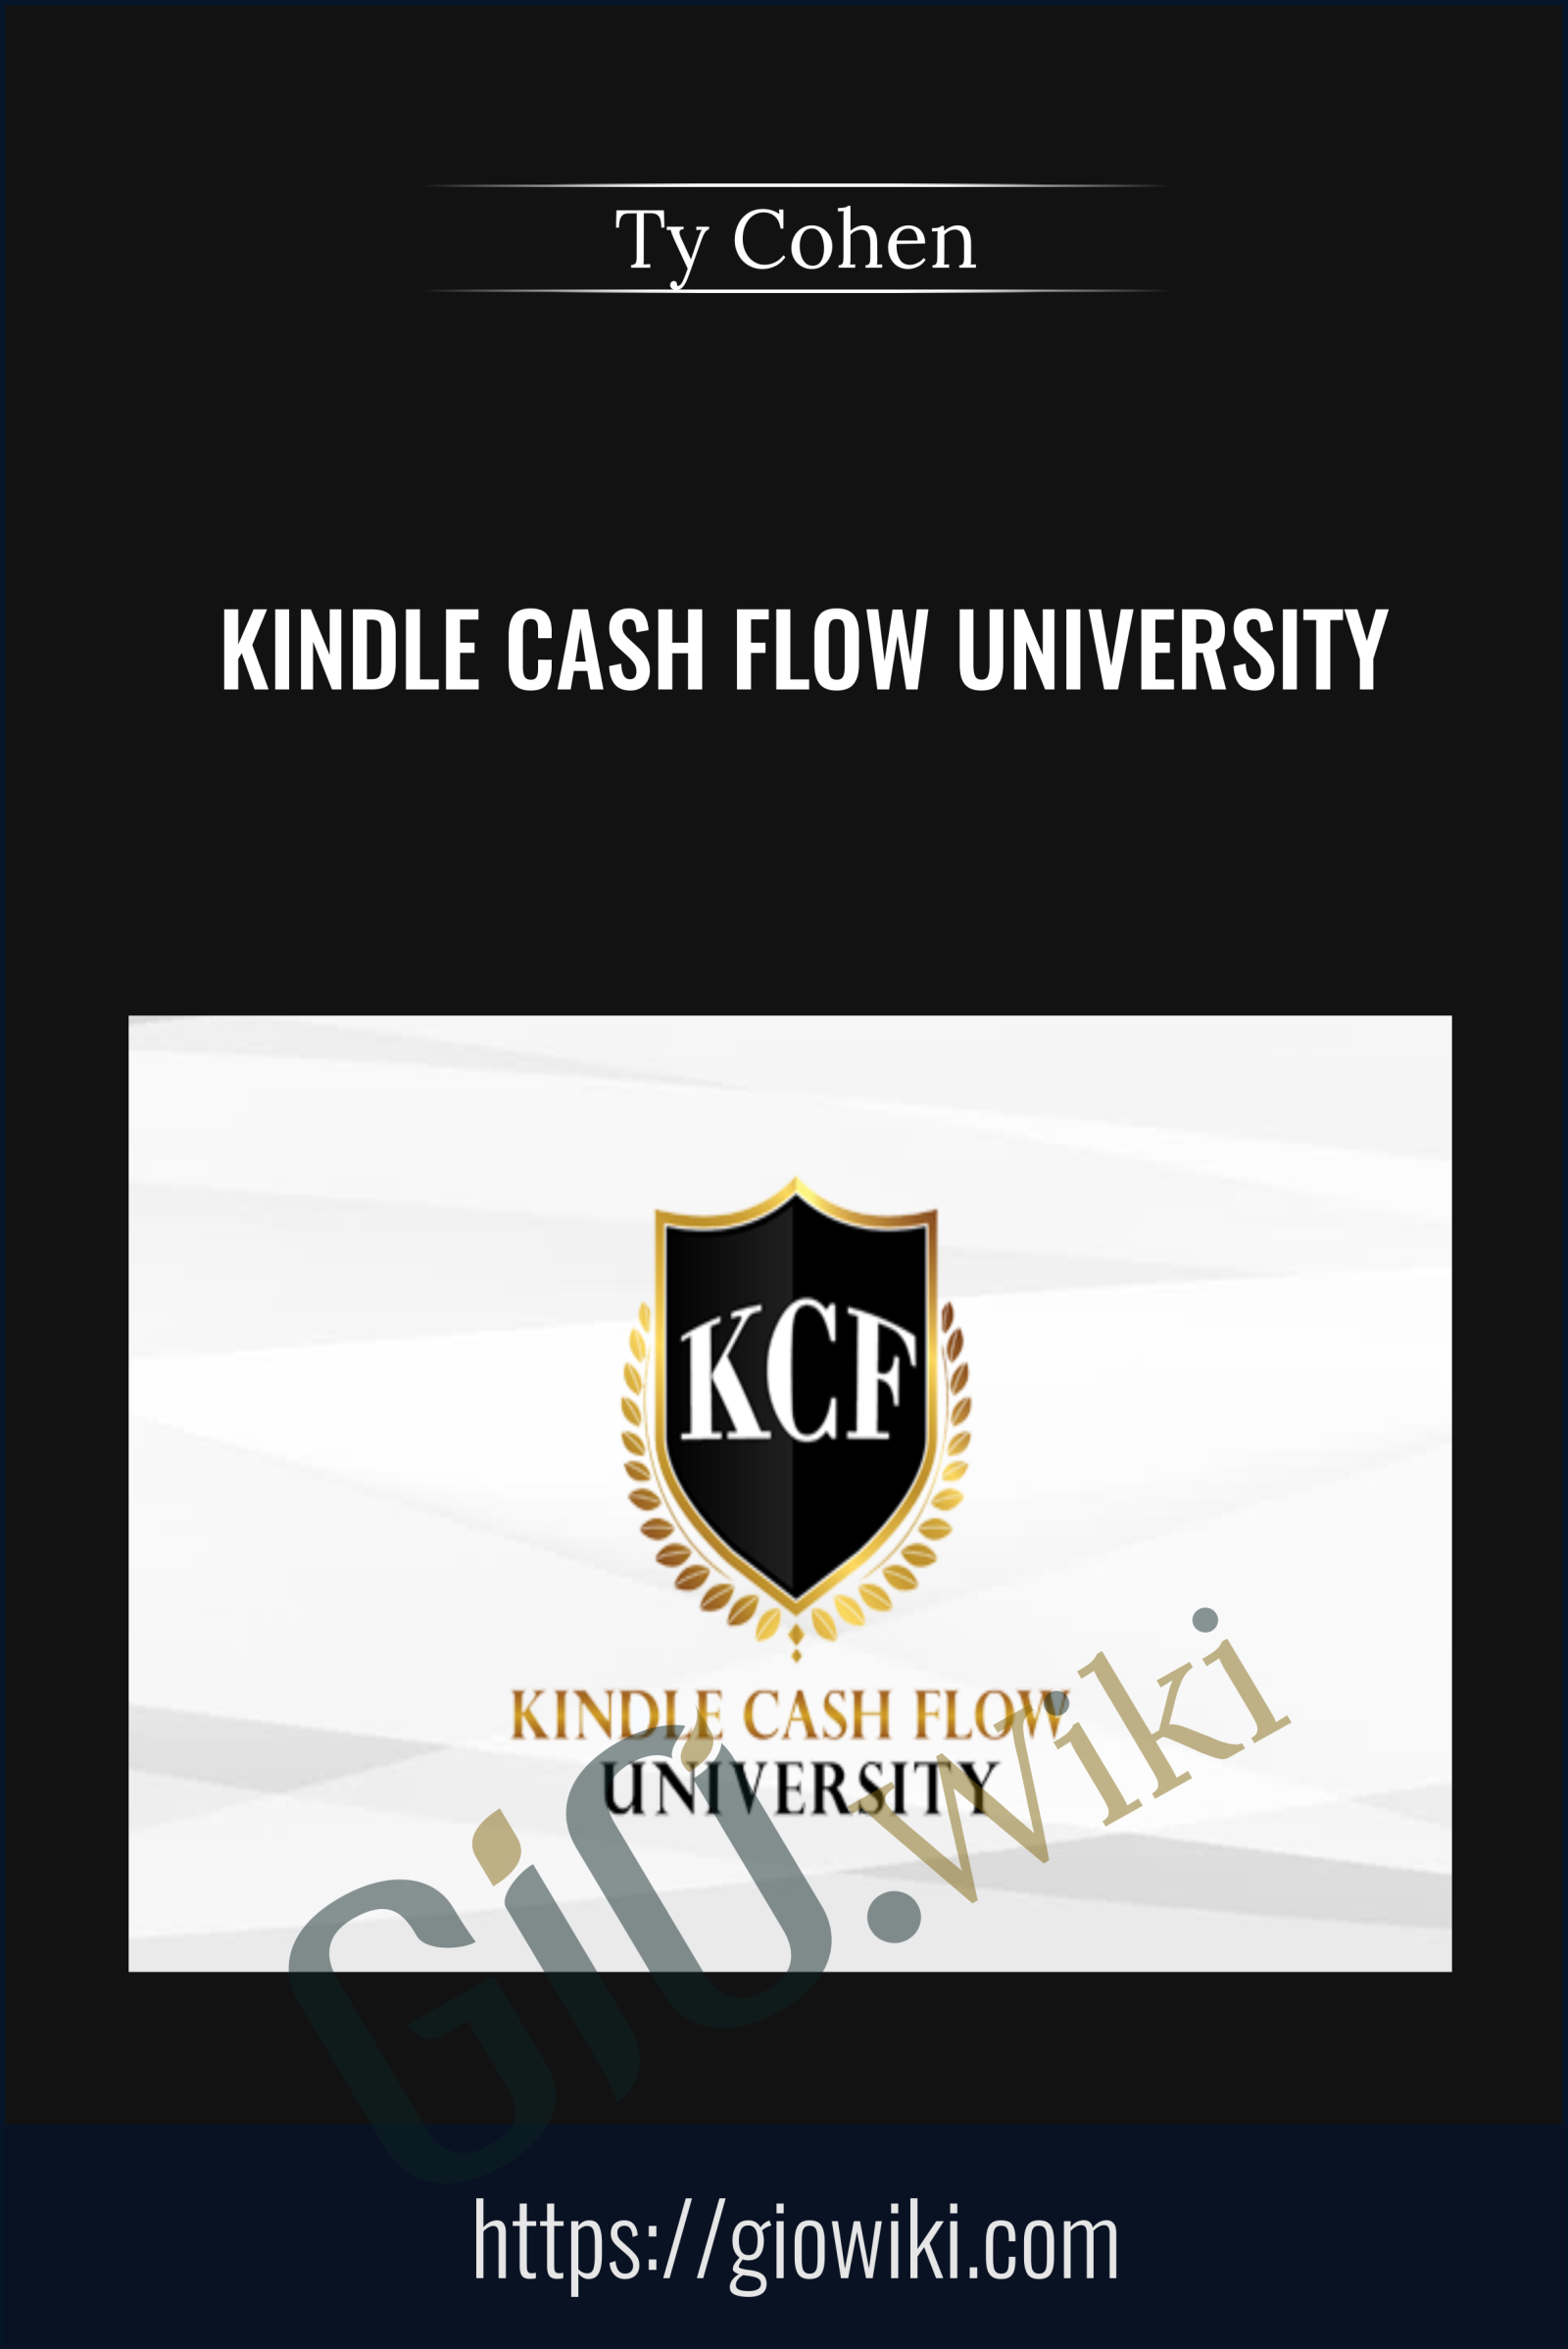 Kindle Cash Flow University 2.0  - Ty Cohen